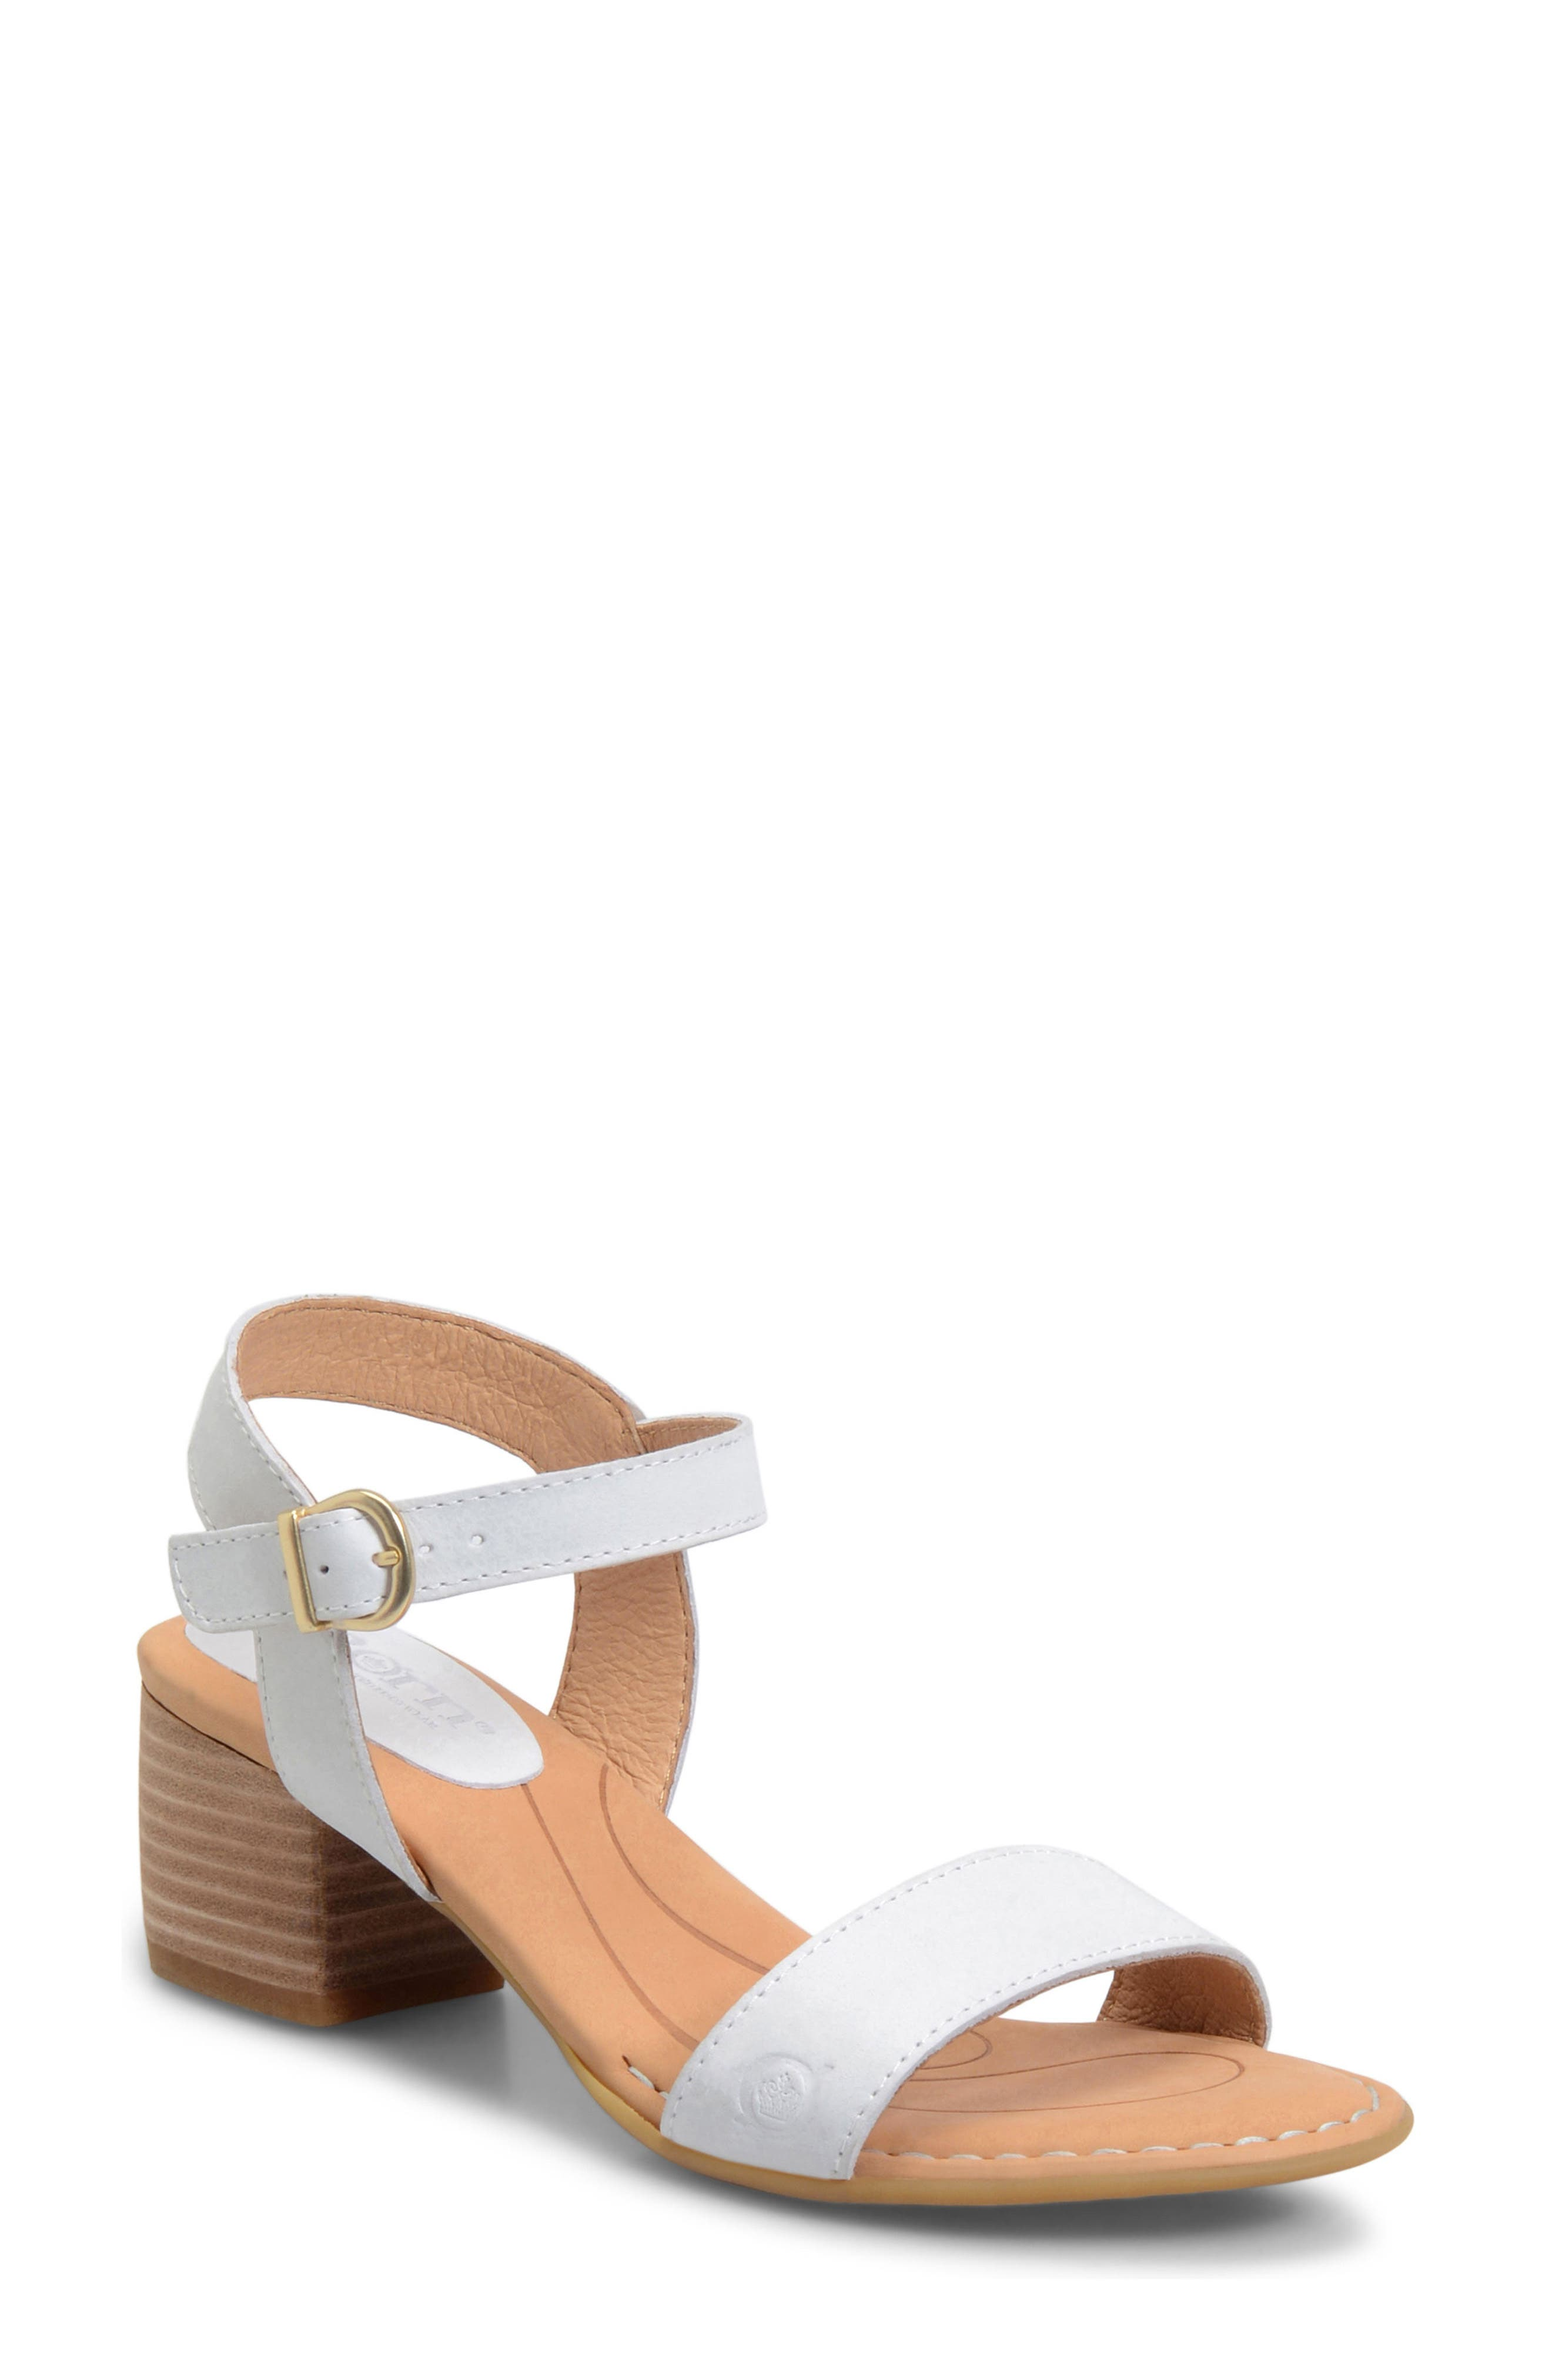 Medan Sandal,                         Main,                         color, White Leather